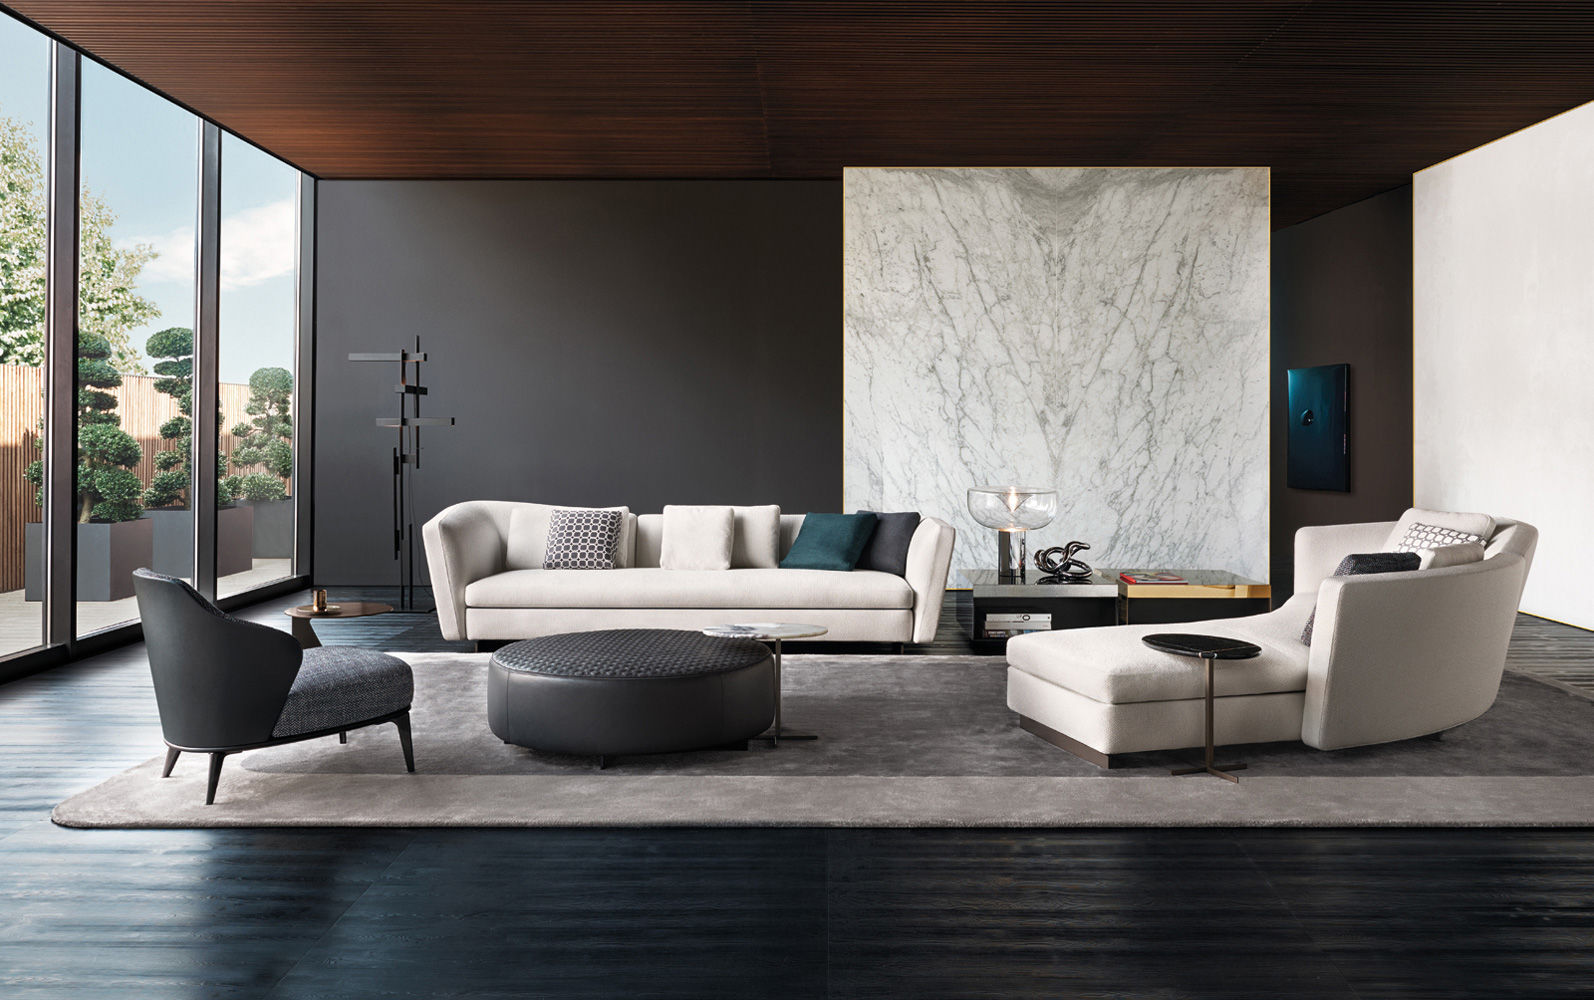 Full Size of Minotti Sofa Couch For Sale Cad Block Hamilton India Used Bed Alexander Dimensions Lawrence List Freeman Modulsofa Eck Halbrund Modern Seymour Tom Tailor Big L Sofa Minotti Sofa